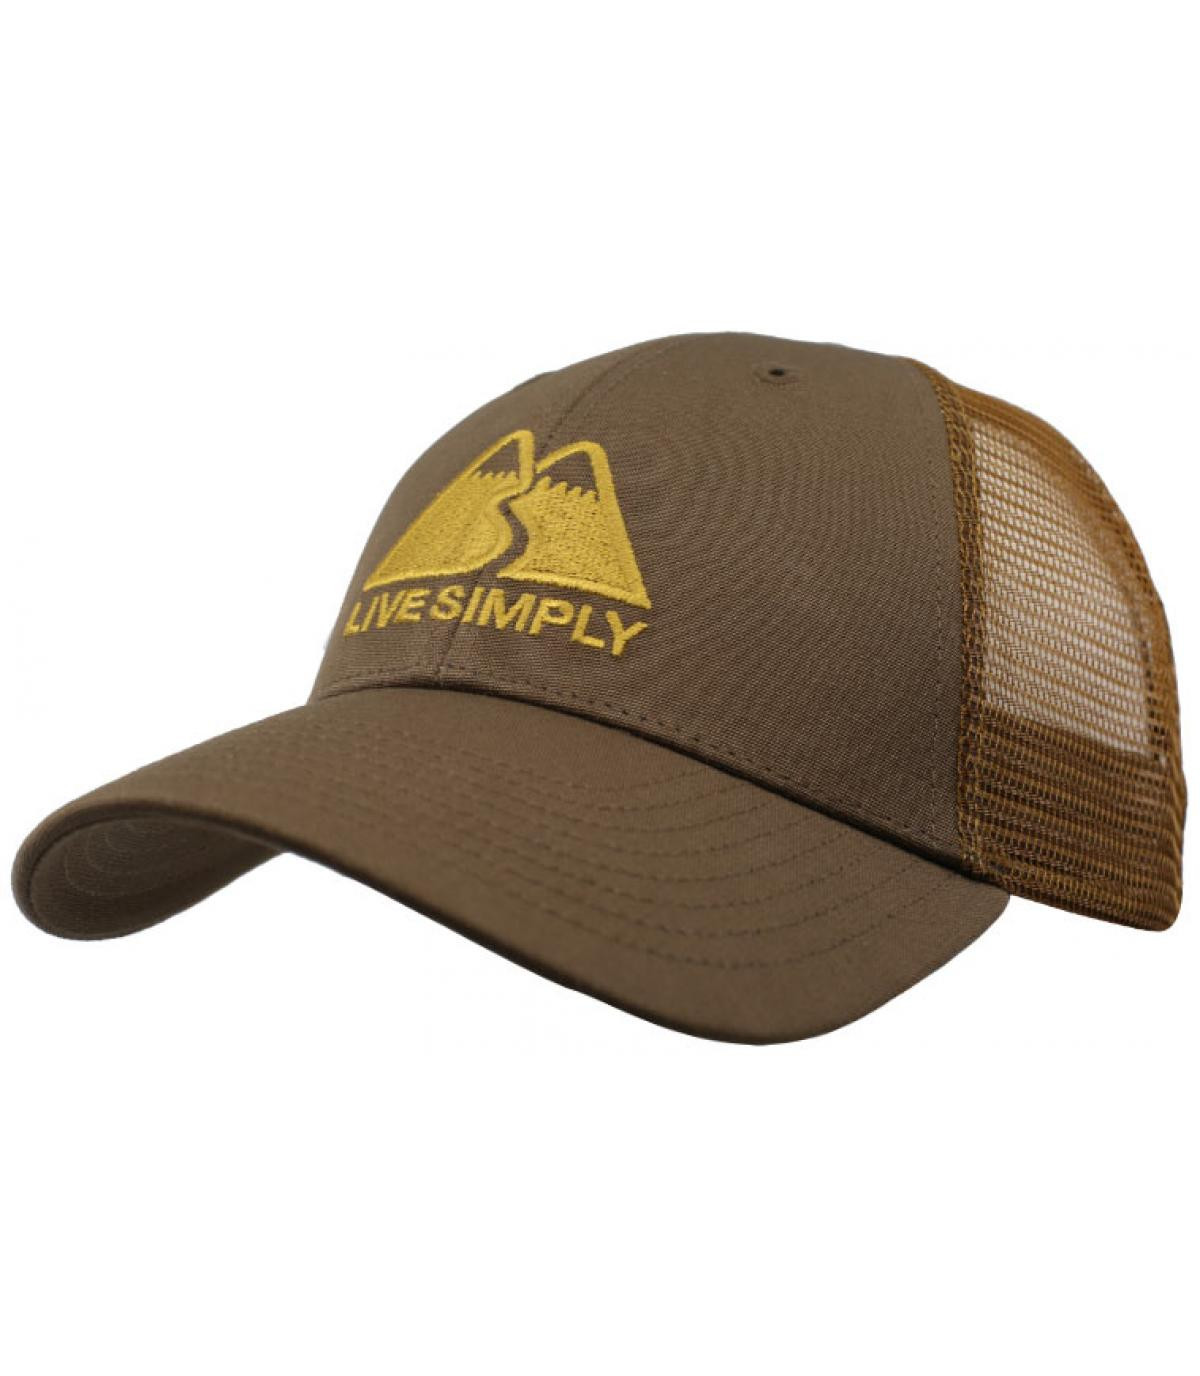 Détails Live Simply LoPro Trucker timber brown - image 2